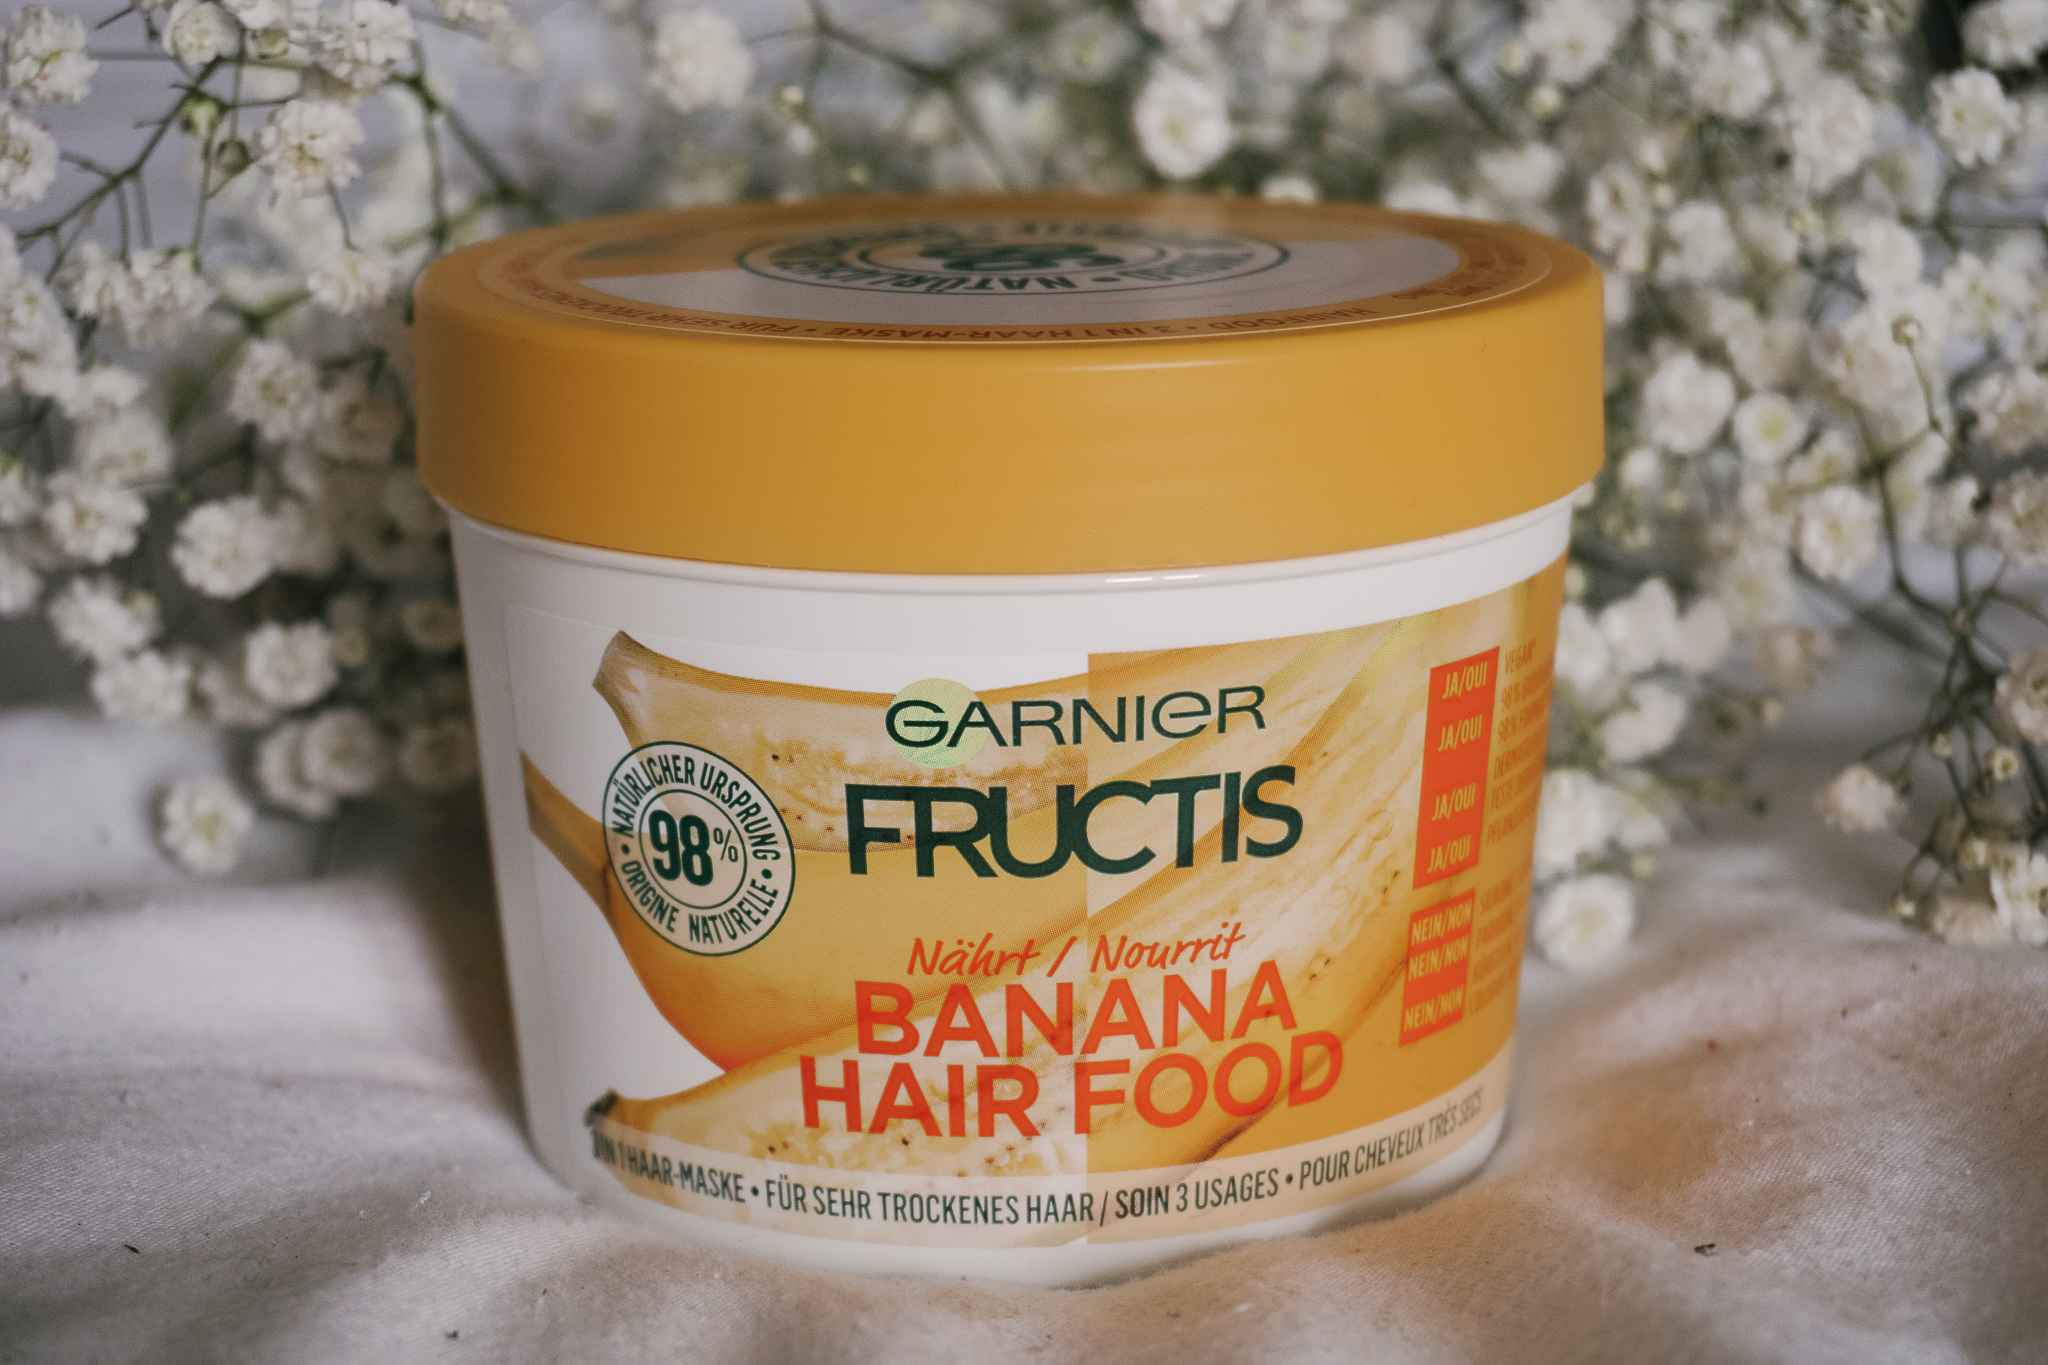 fructis garnier hair food